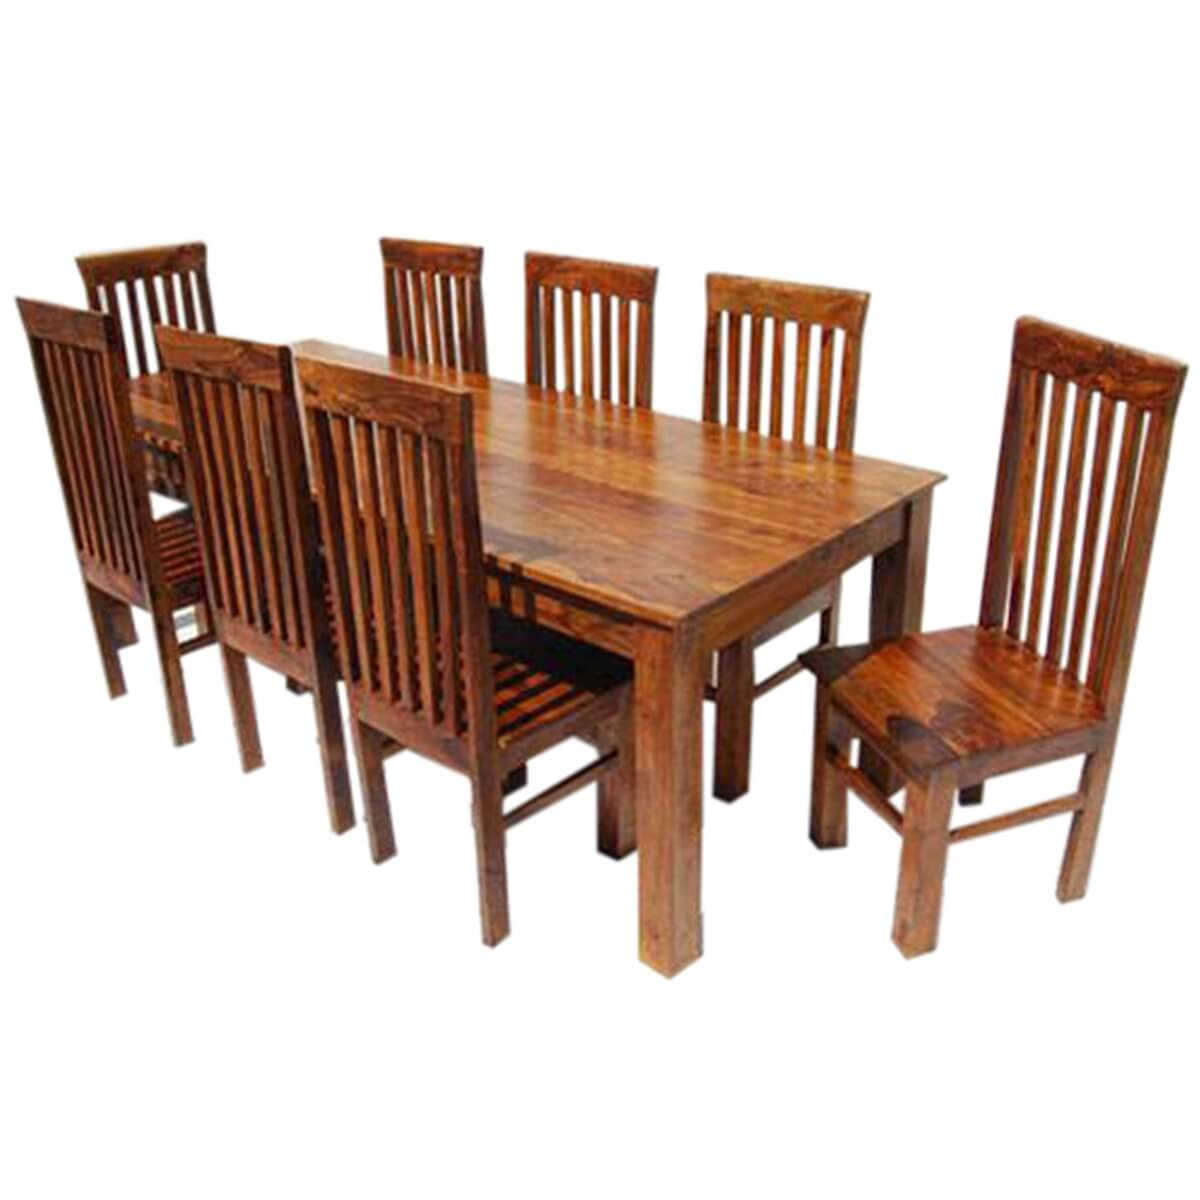 Ebay Dining Table And Chairs Uk Images